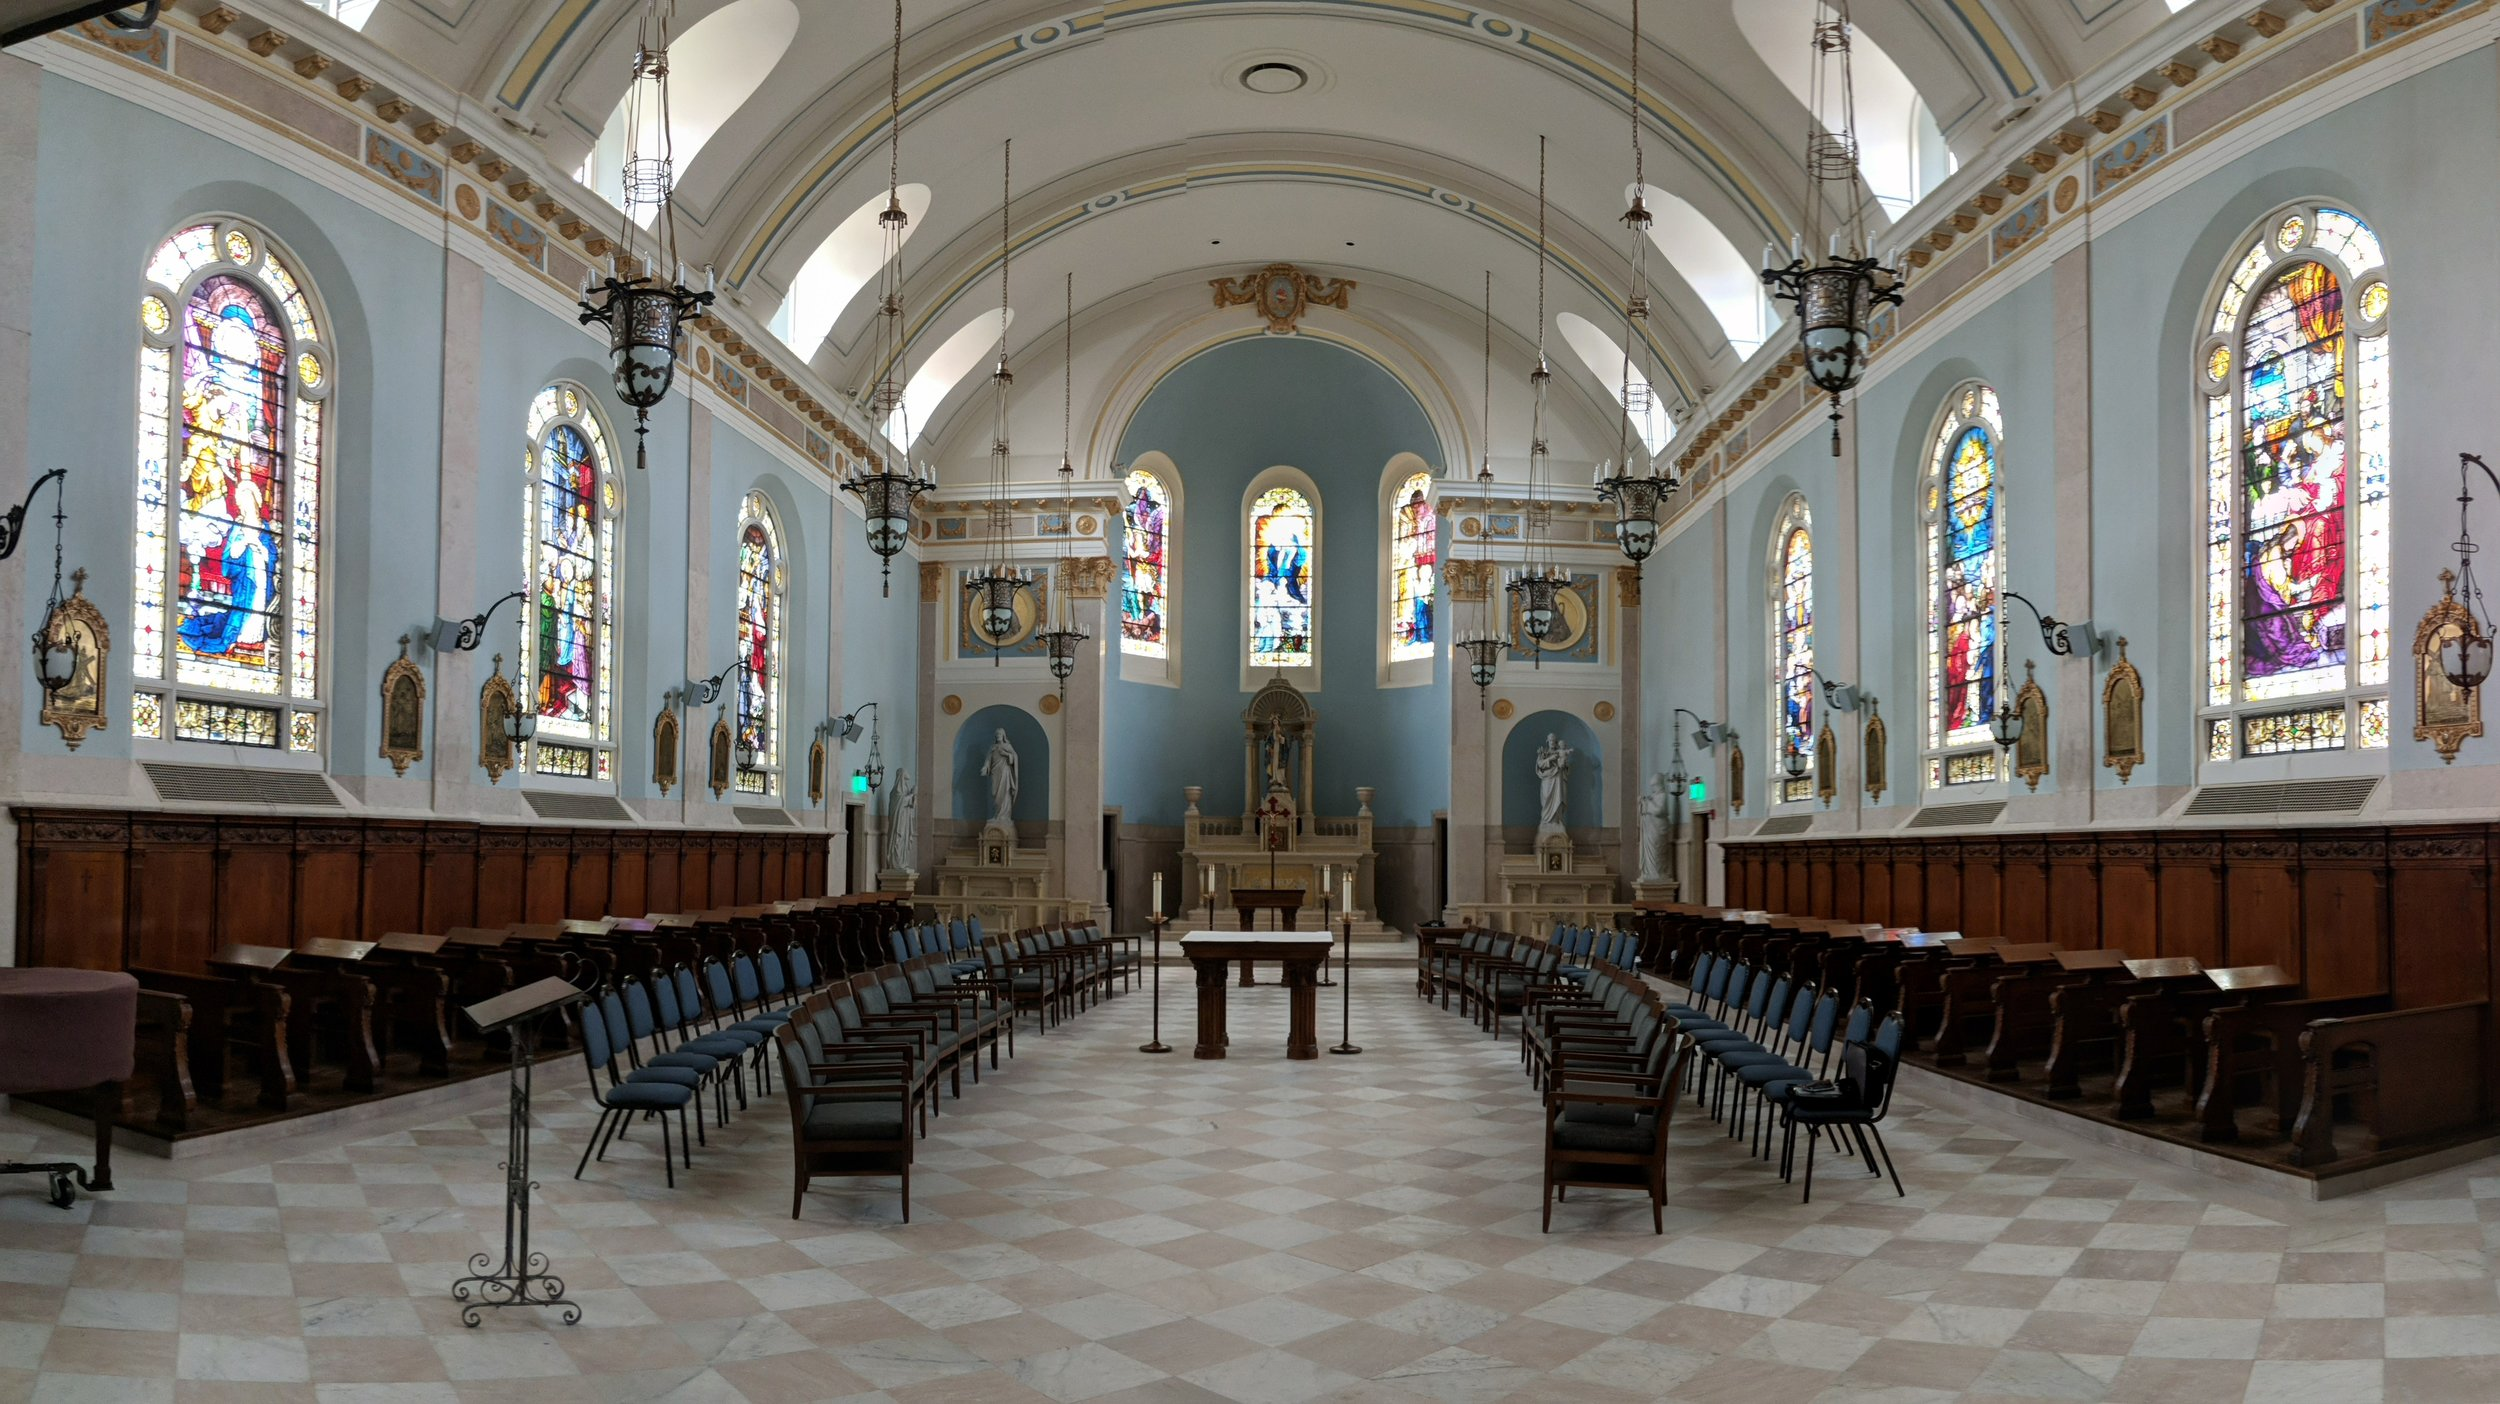 The recently renovated Marymount Convent uses all CAMM DT-200 speakers for audio reproduction.